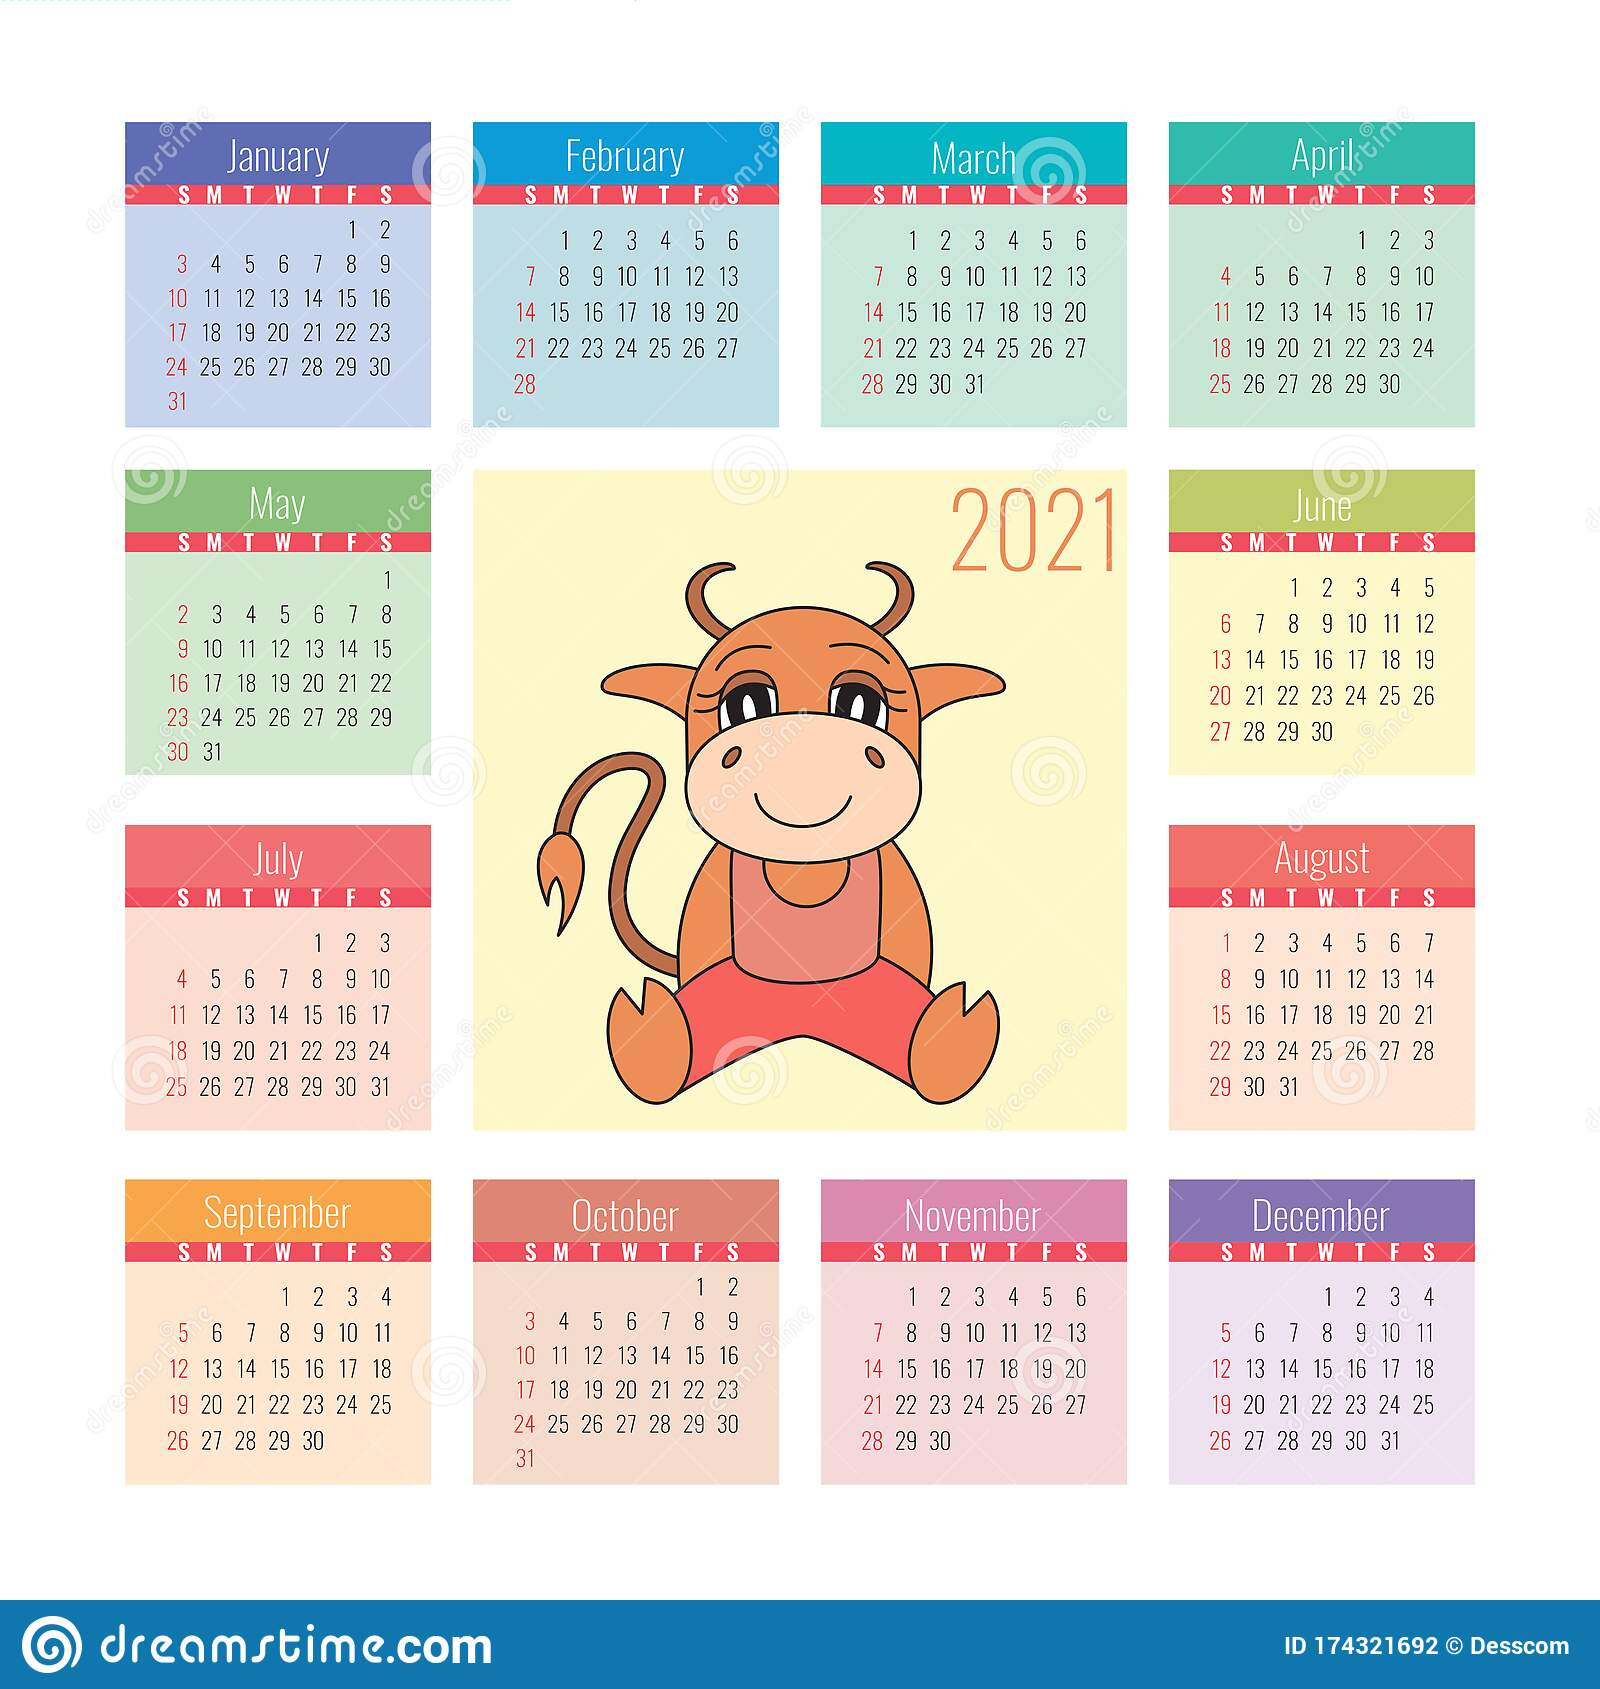 calendar 2021 ox symbol of the new year vector design template chinese horoscope colorful english square pocket calender week stock vector illustration of planning bull 174321692 https www dreamstime com calendar ox symbol new year vector design template chinese horoscope colorful english square pocket calender week calendar image174321692